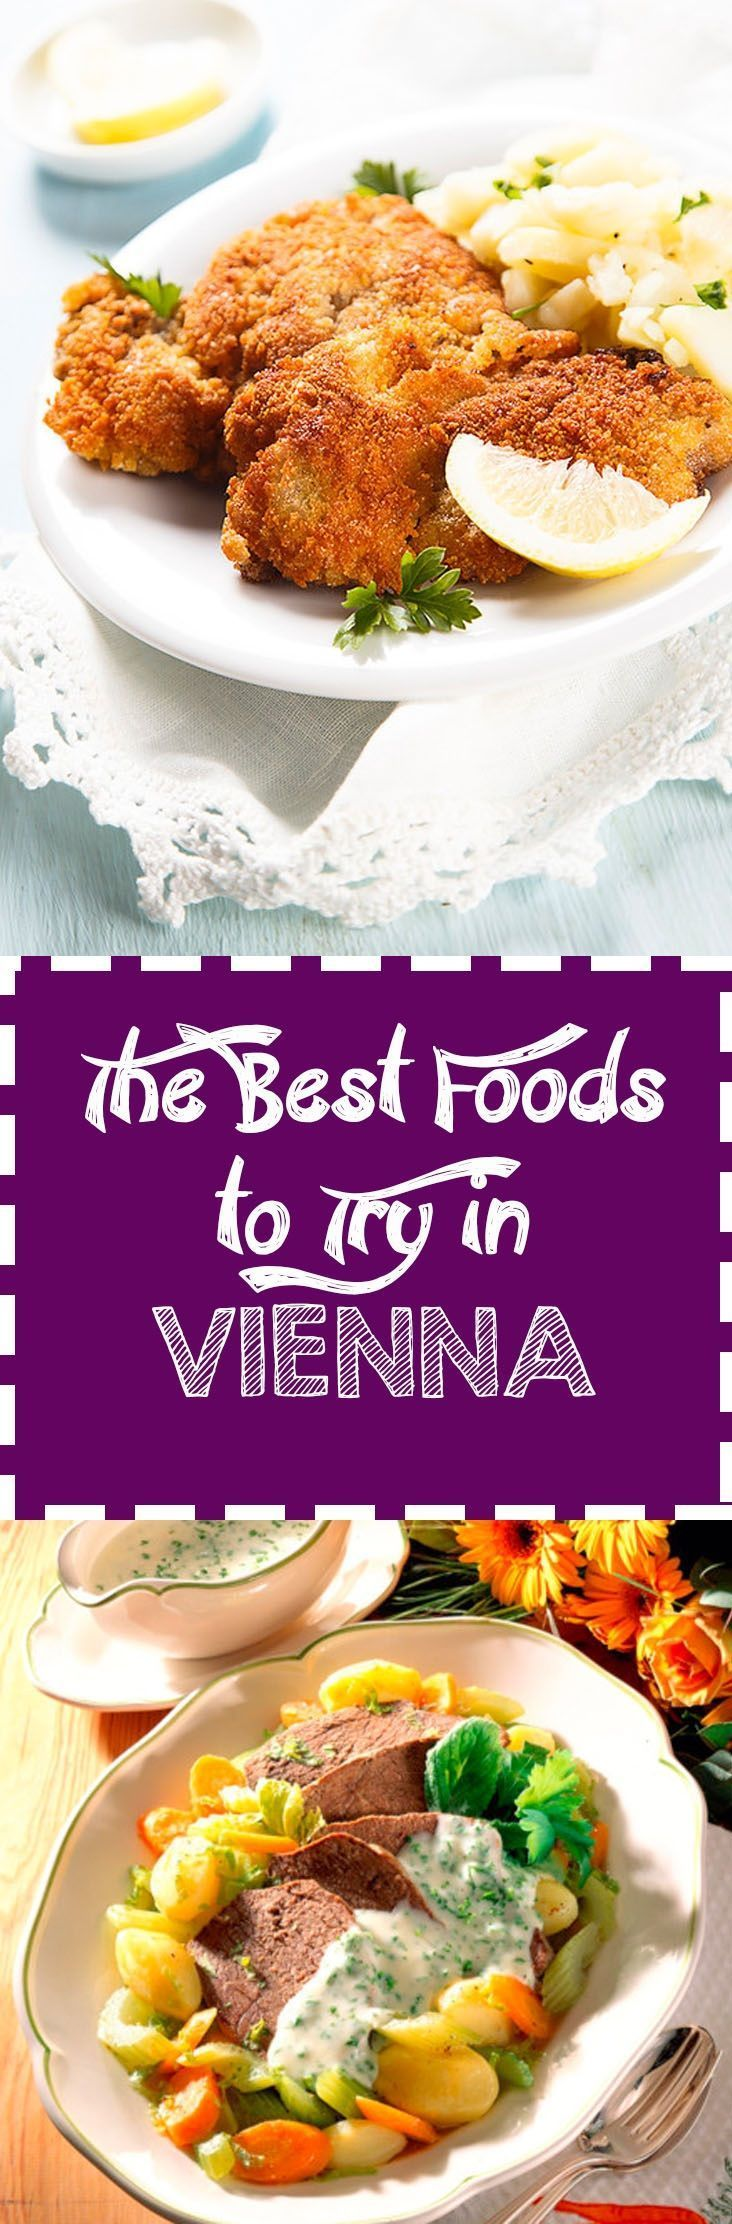 In addition to its political and economic significance as both the capital and the largest city of Austria, Vienna has the second largest German-speaking population in the world and is also regarded as the paradise of food, congregating both international and local fine cuisine!